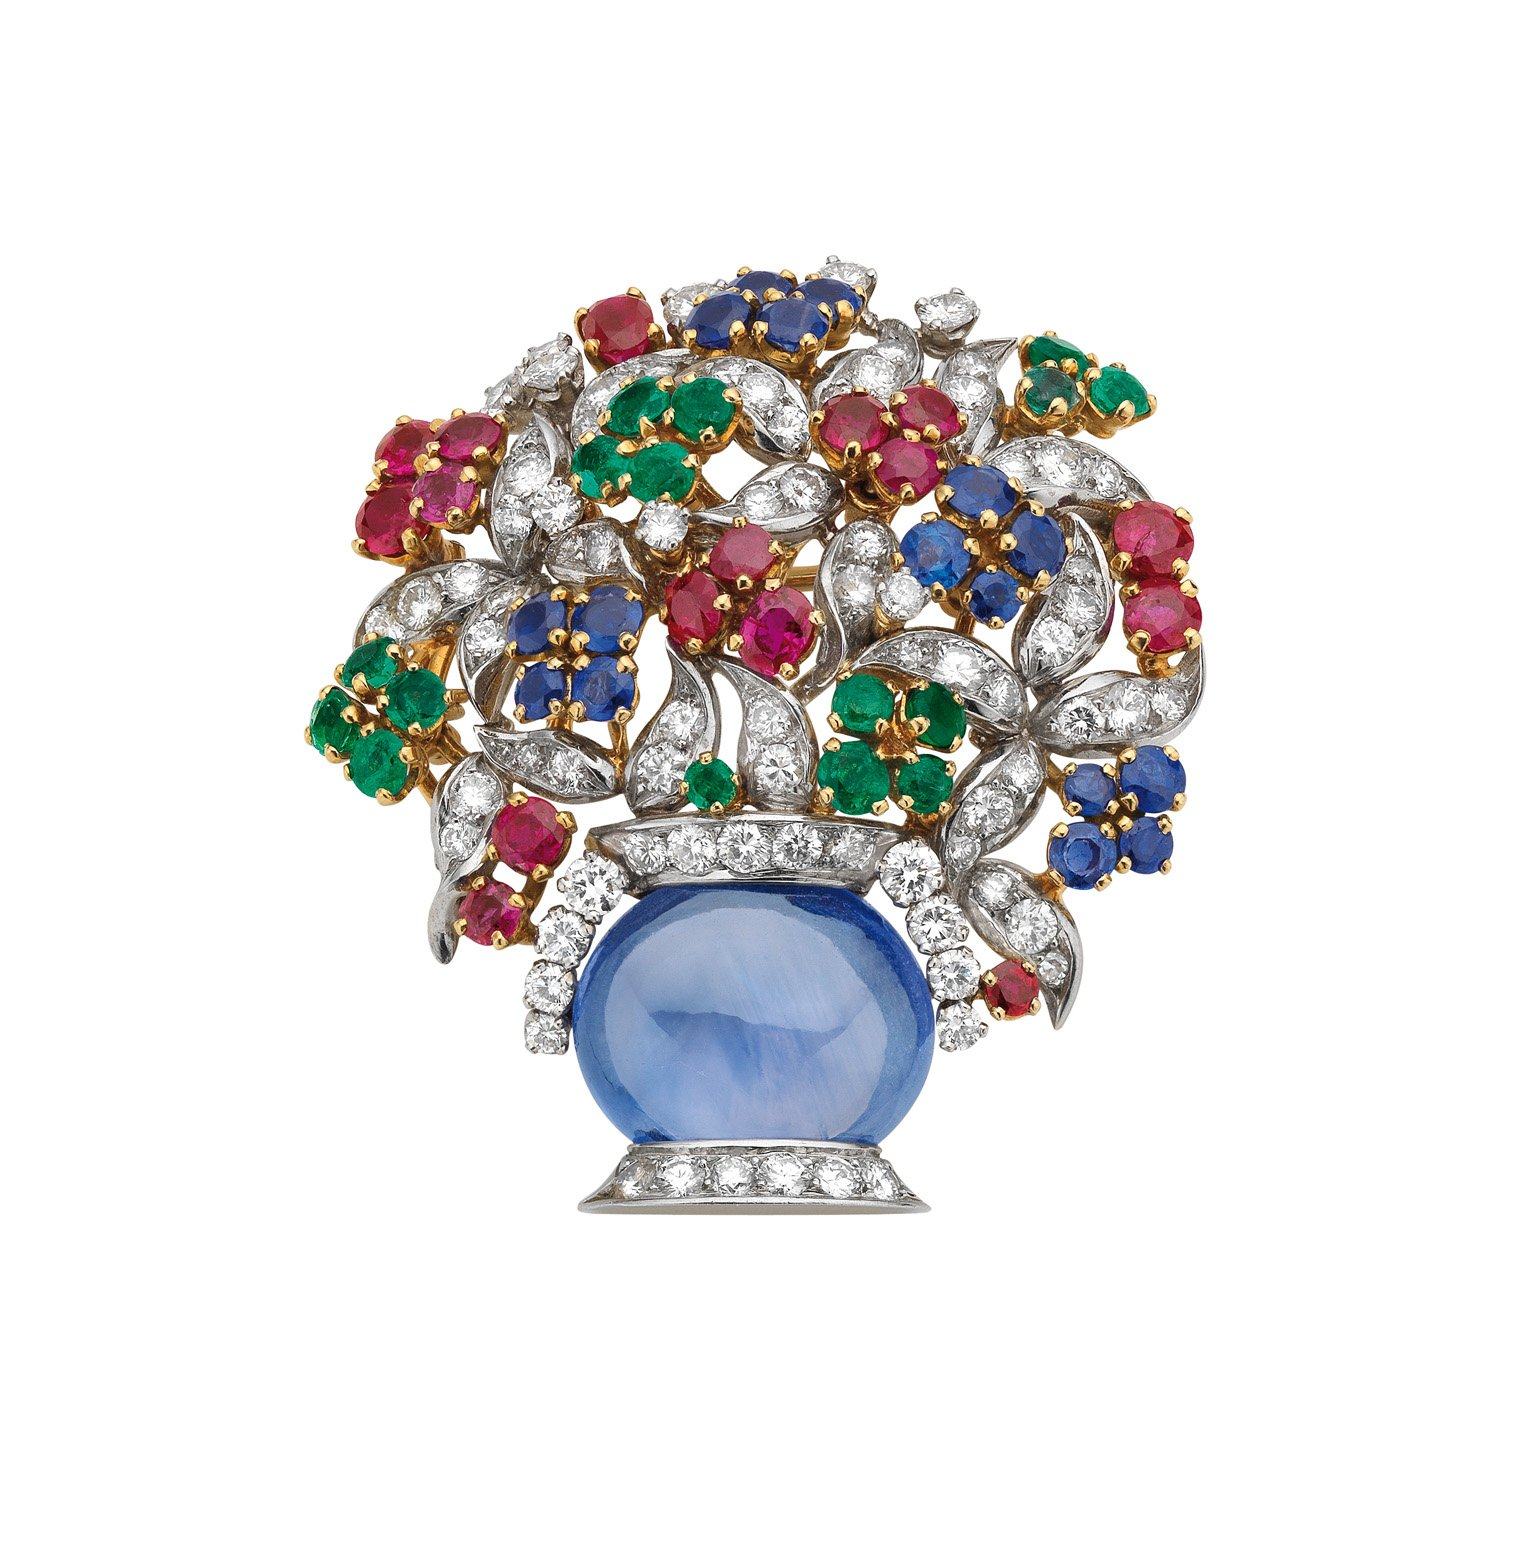 """Giardinetto"" brooch in gold and platinum with sapphires, emeralds, rubies and diamonds, 1960. The vase formed of an oval cabochon sapphire on a diamond-set stand, the foliage suggested by leaf-shaped diamond pave set motifs, the flower-heads decorated with circular-cut emeralds, rubies and sapphires. Marks: on the mount, at the base of the vase: ""BVLGARI"" engraved."